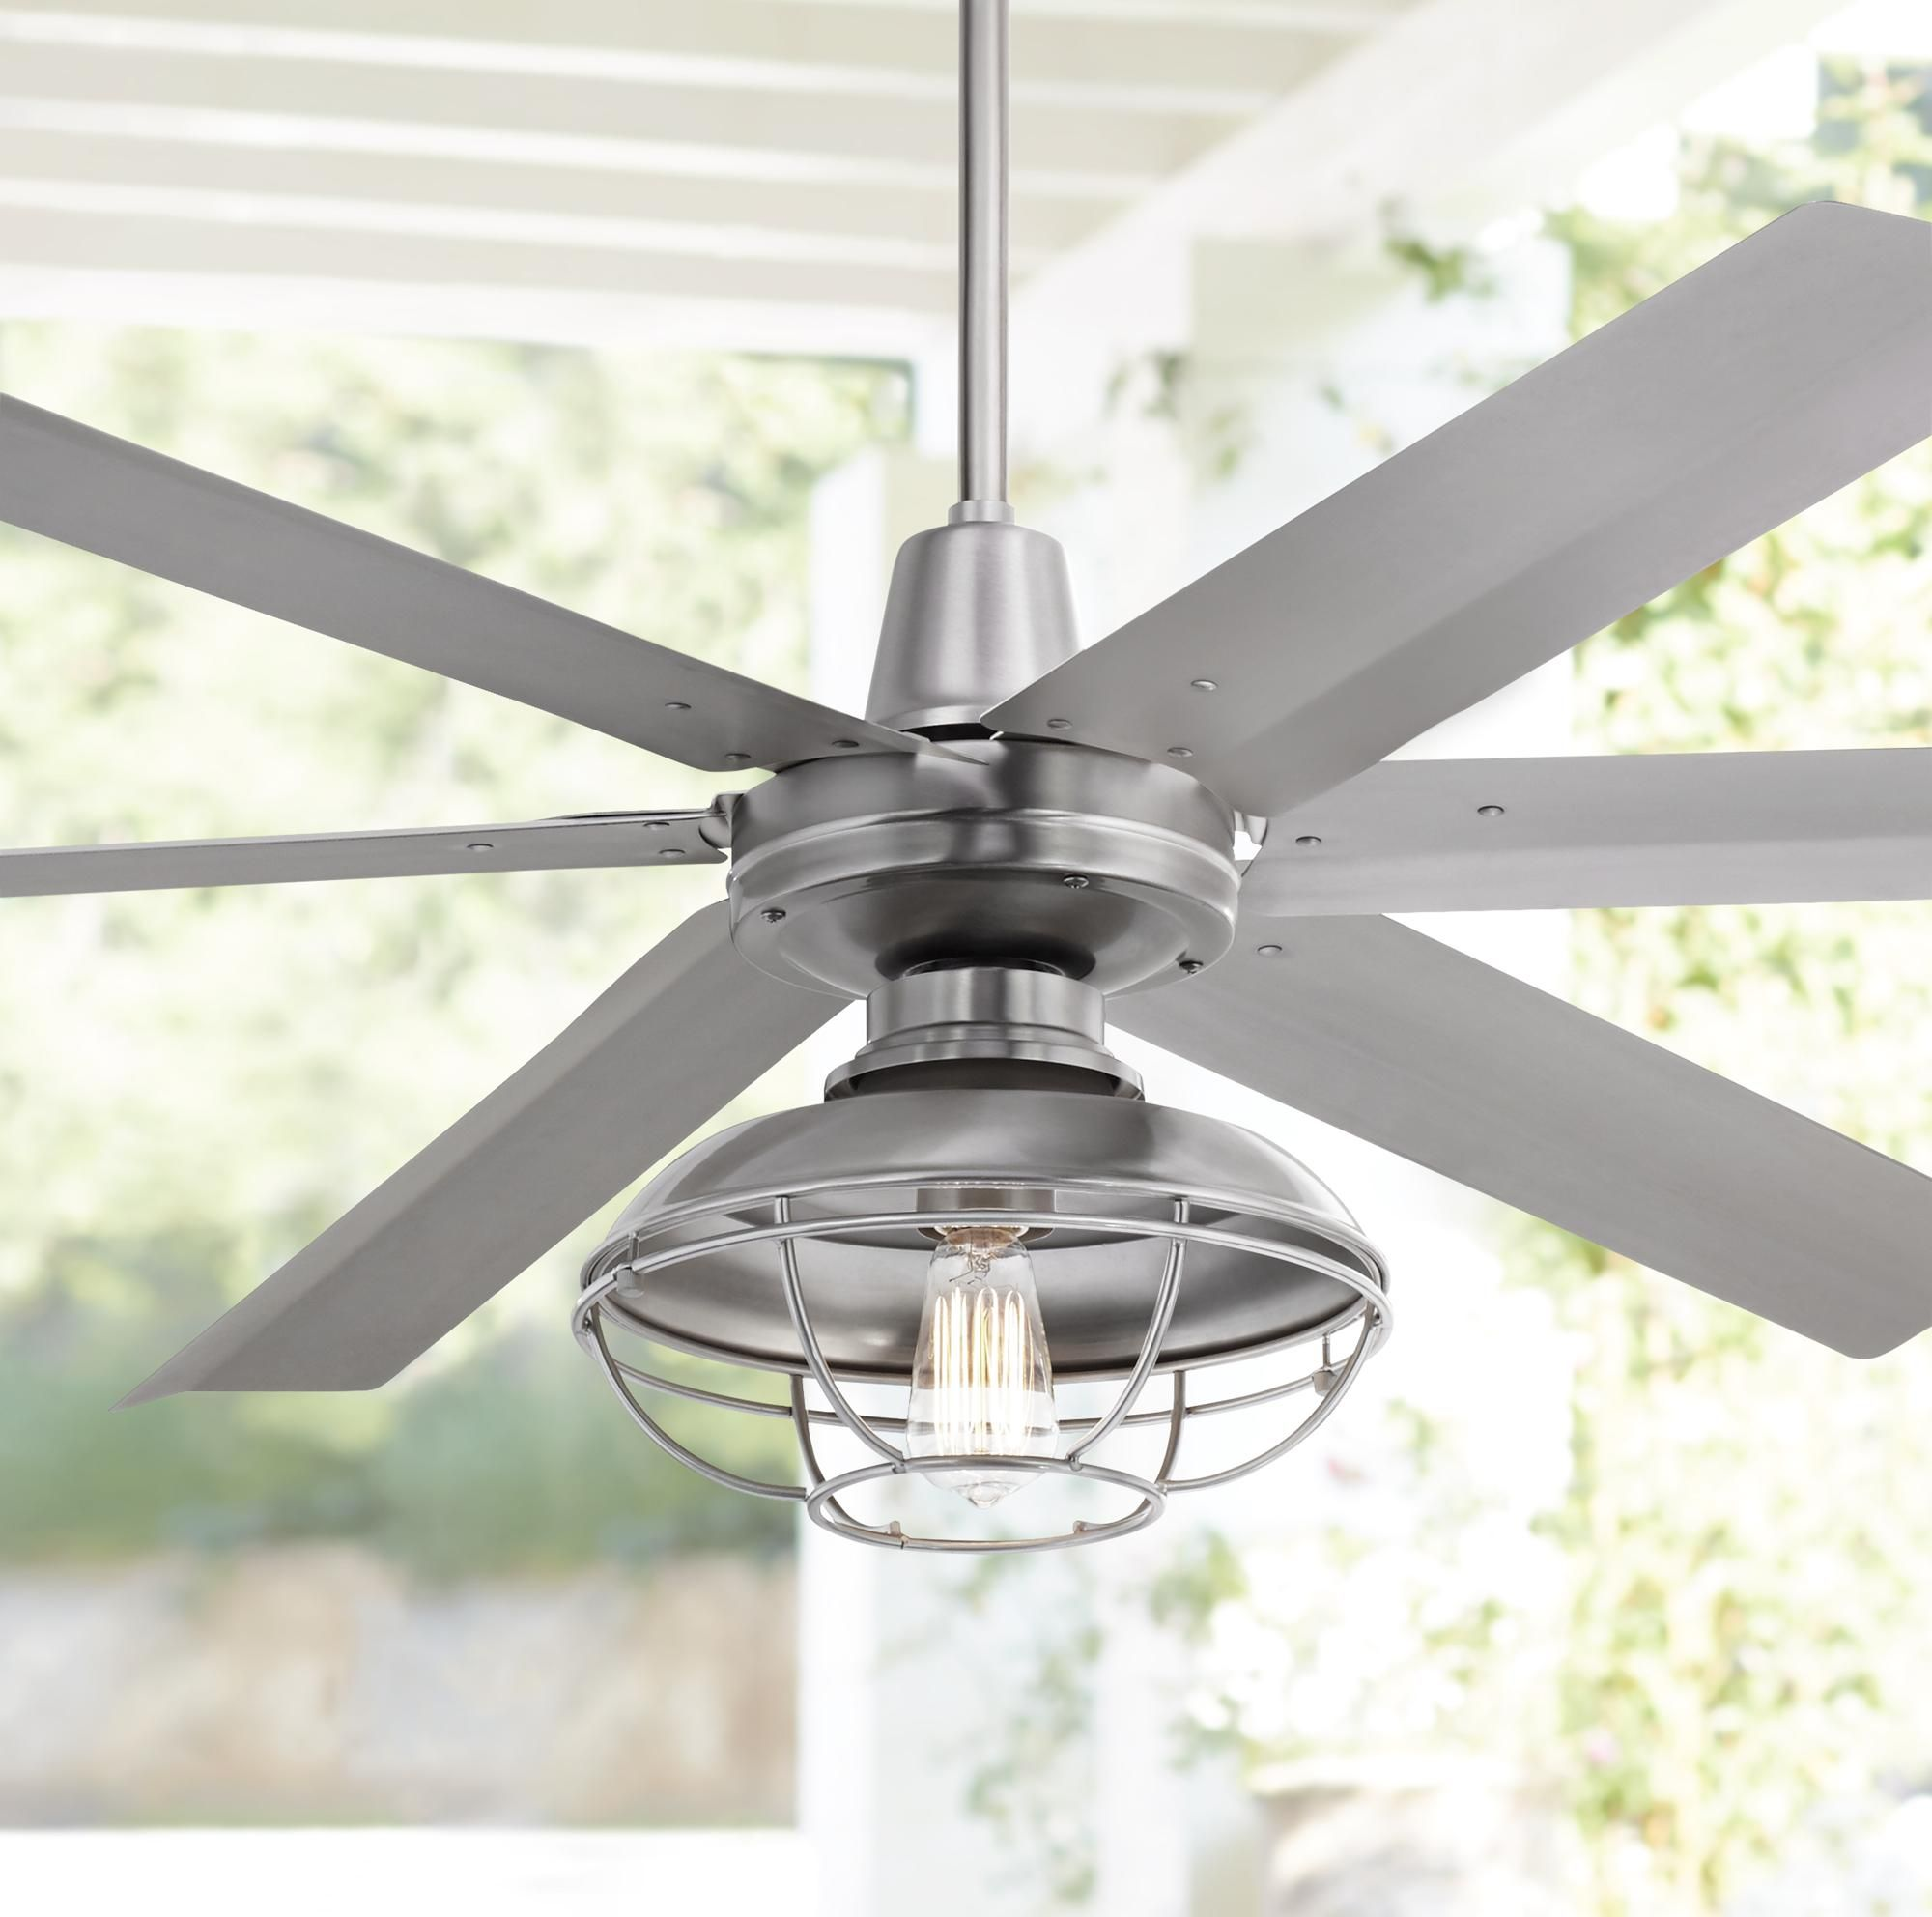 Ceiling Fans 60 Turbina Max Dc Franklin Park Damp Led Ceiling Fan In 2020 Led Ceiling Fan Ceiling Fan Outdoor Ceiling Fans